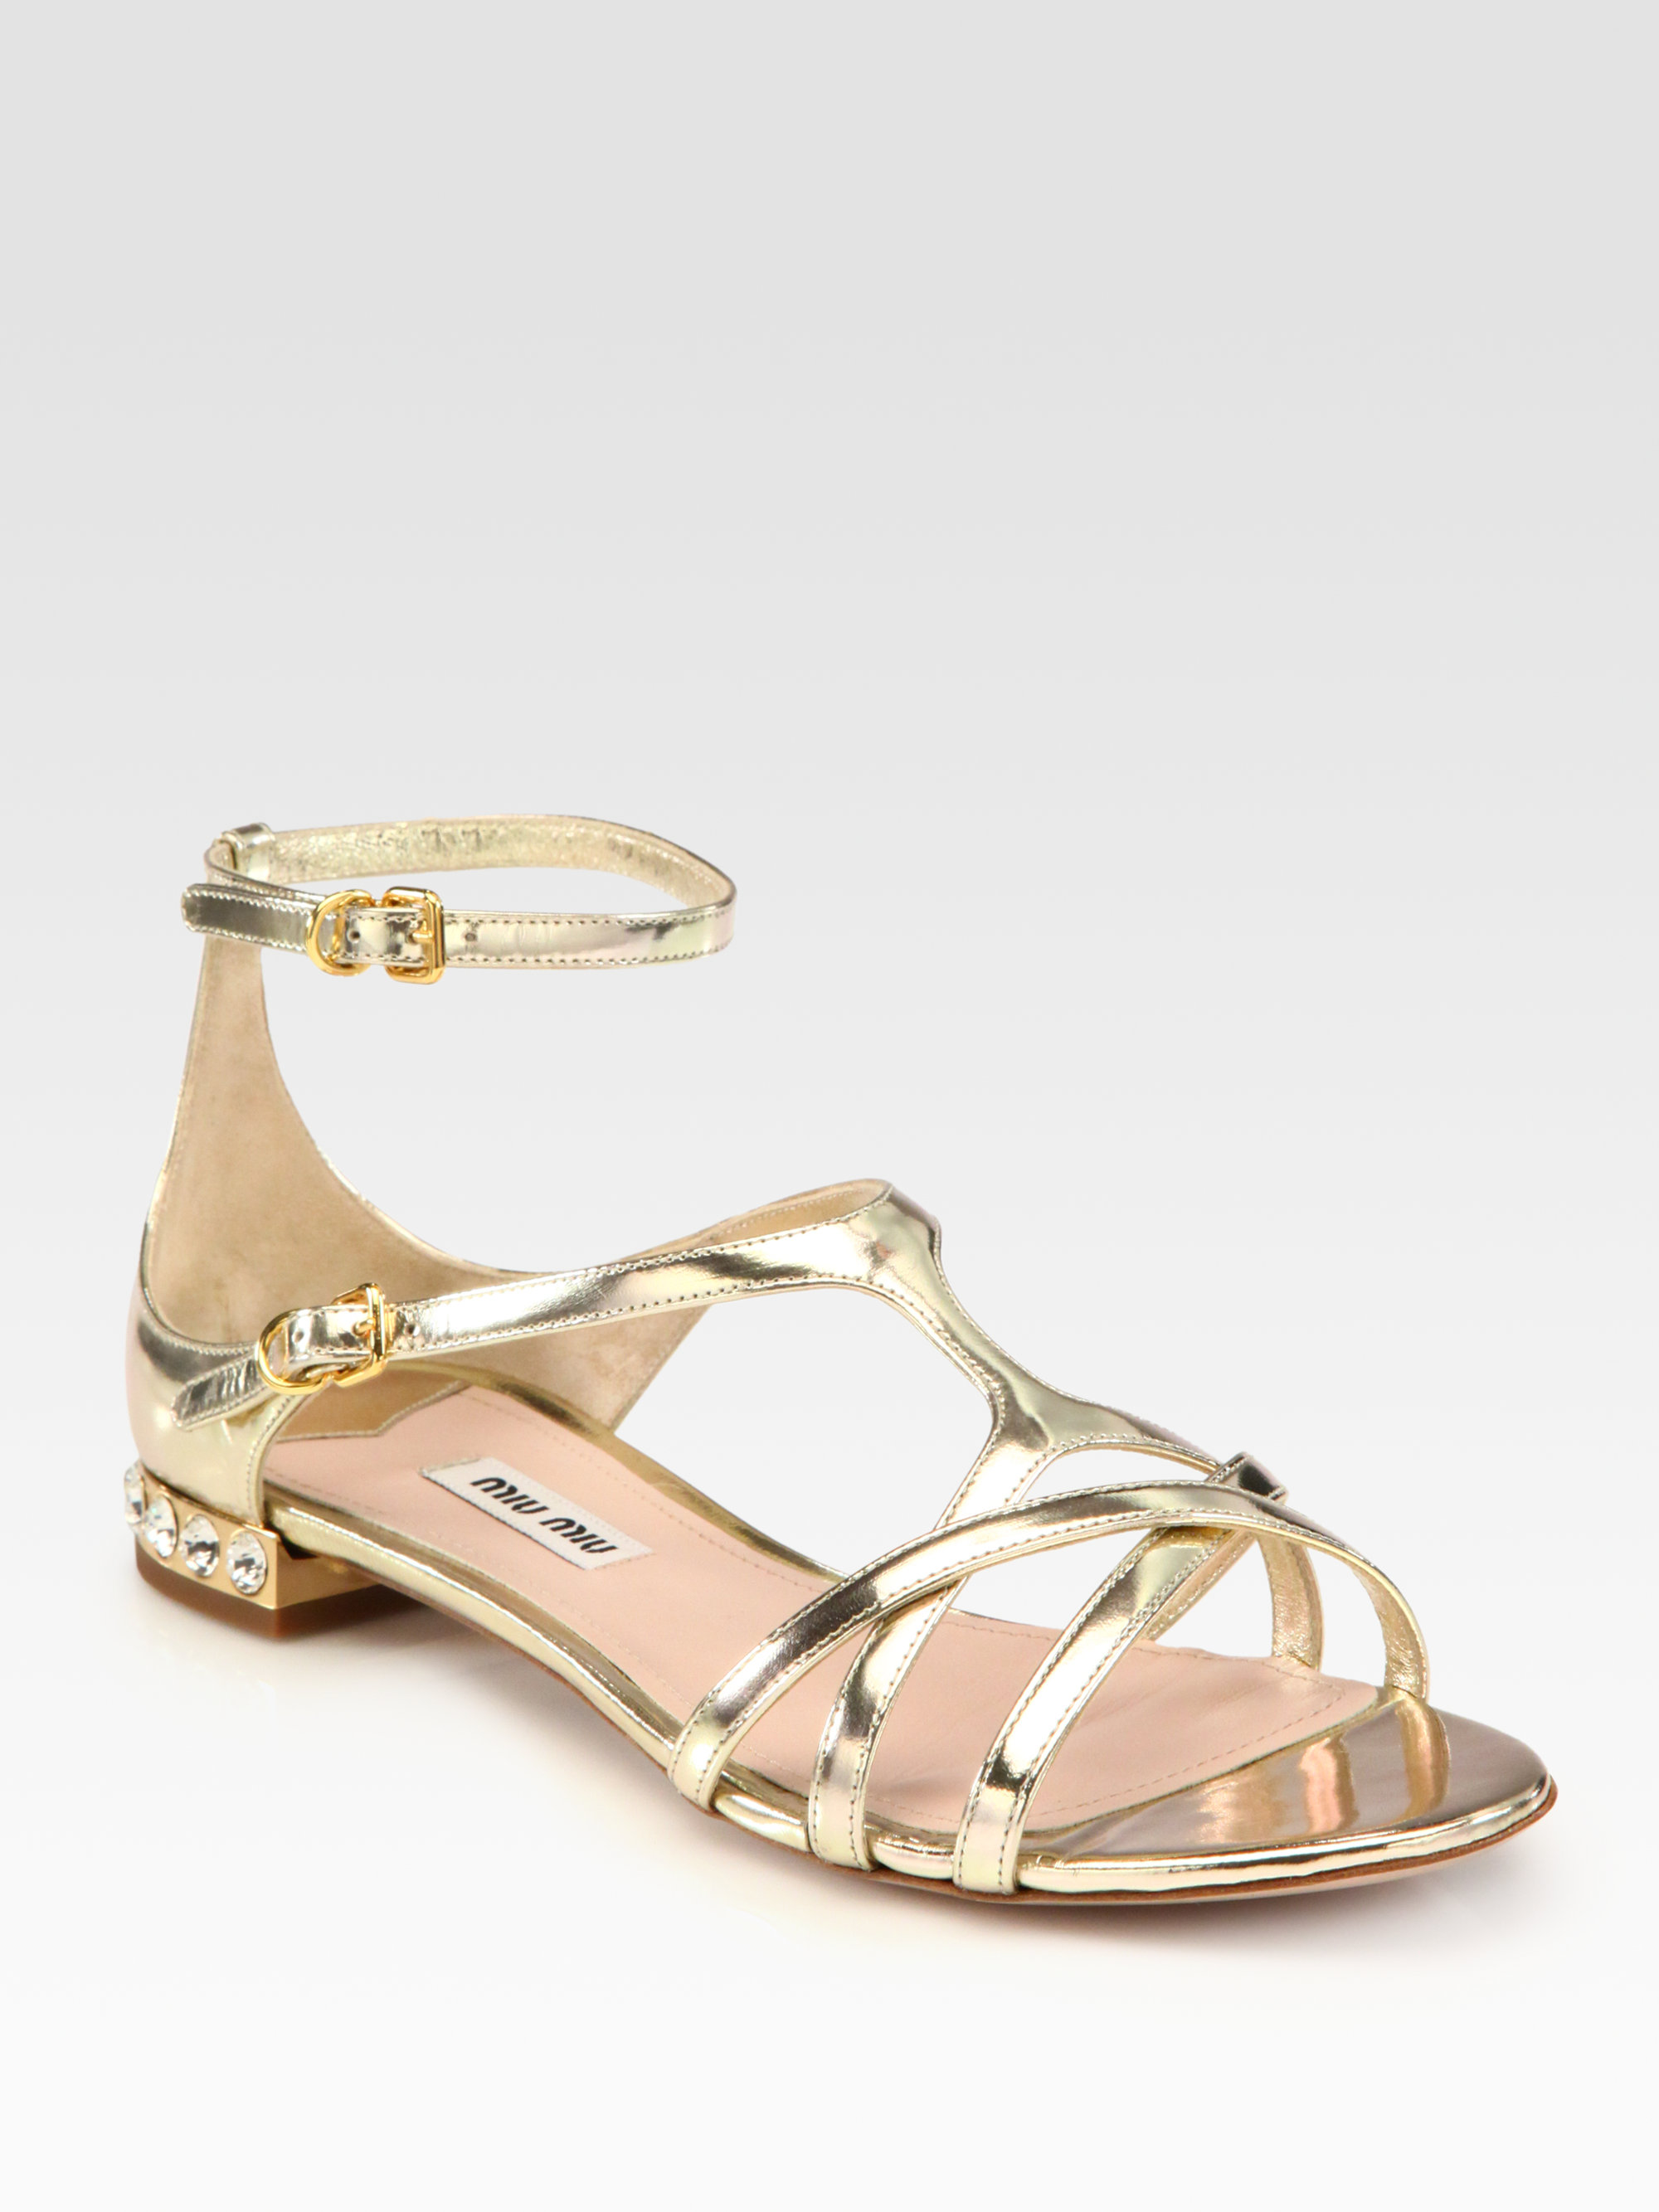 613bbc04ef1 Lyst - Miu Miu Metallic Leather Jewel Sandals in Metallic